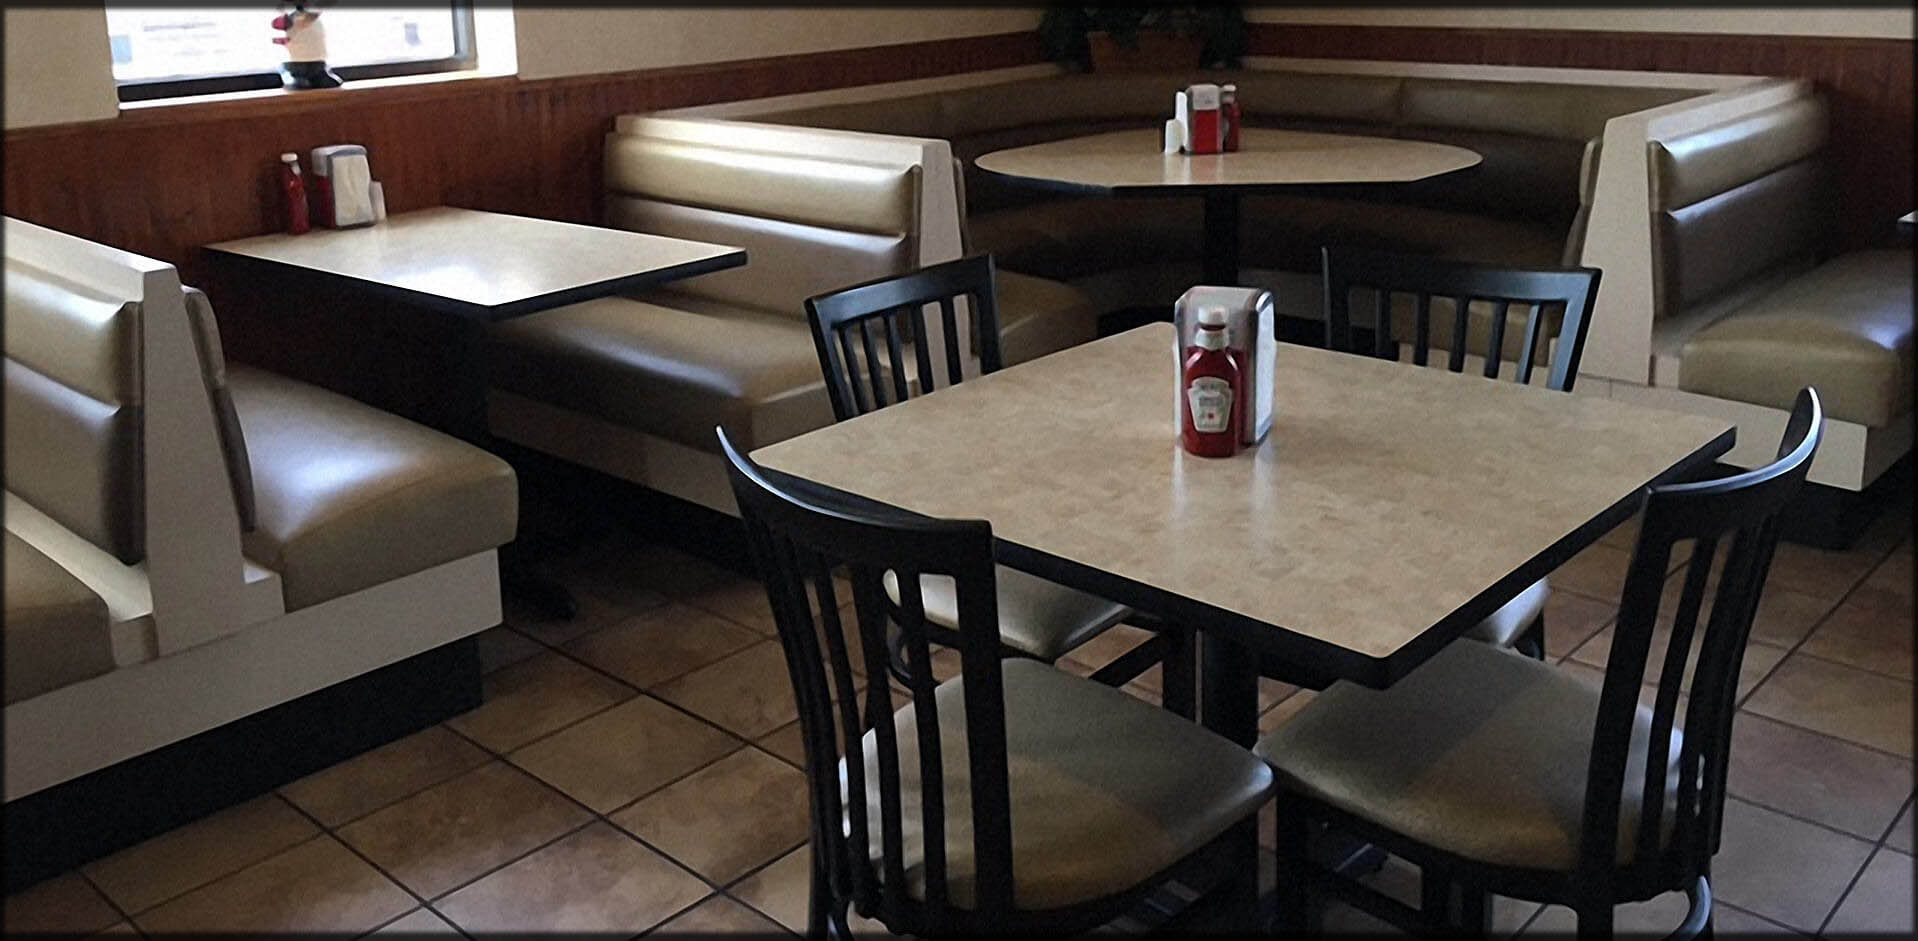 Where To Buy Bar Stools In Toronto Restaurant Booth For Sale Toronto Banquette Seating For